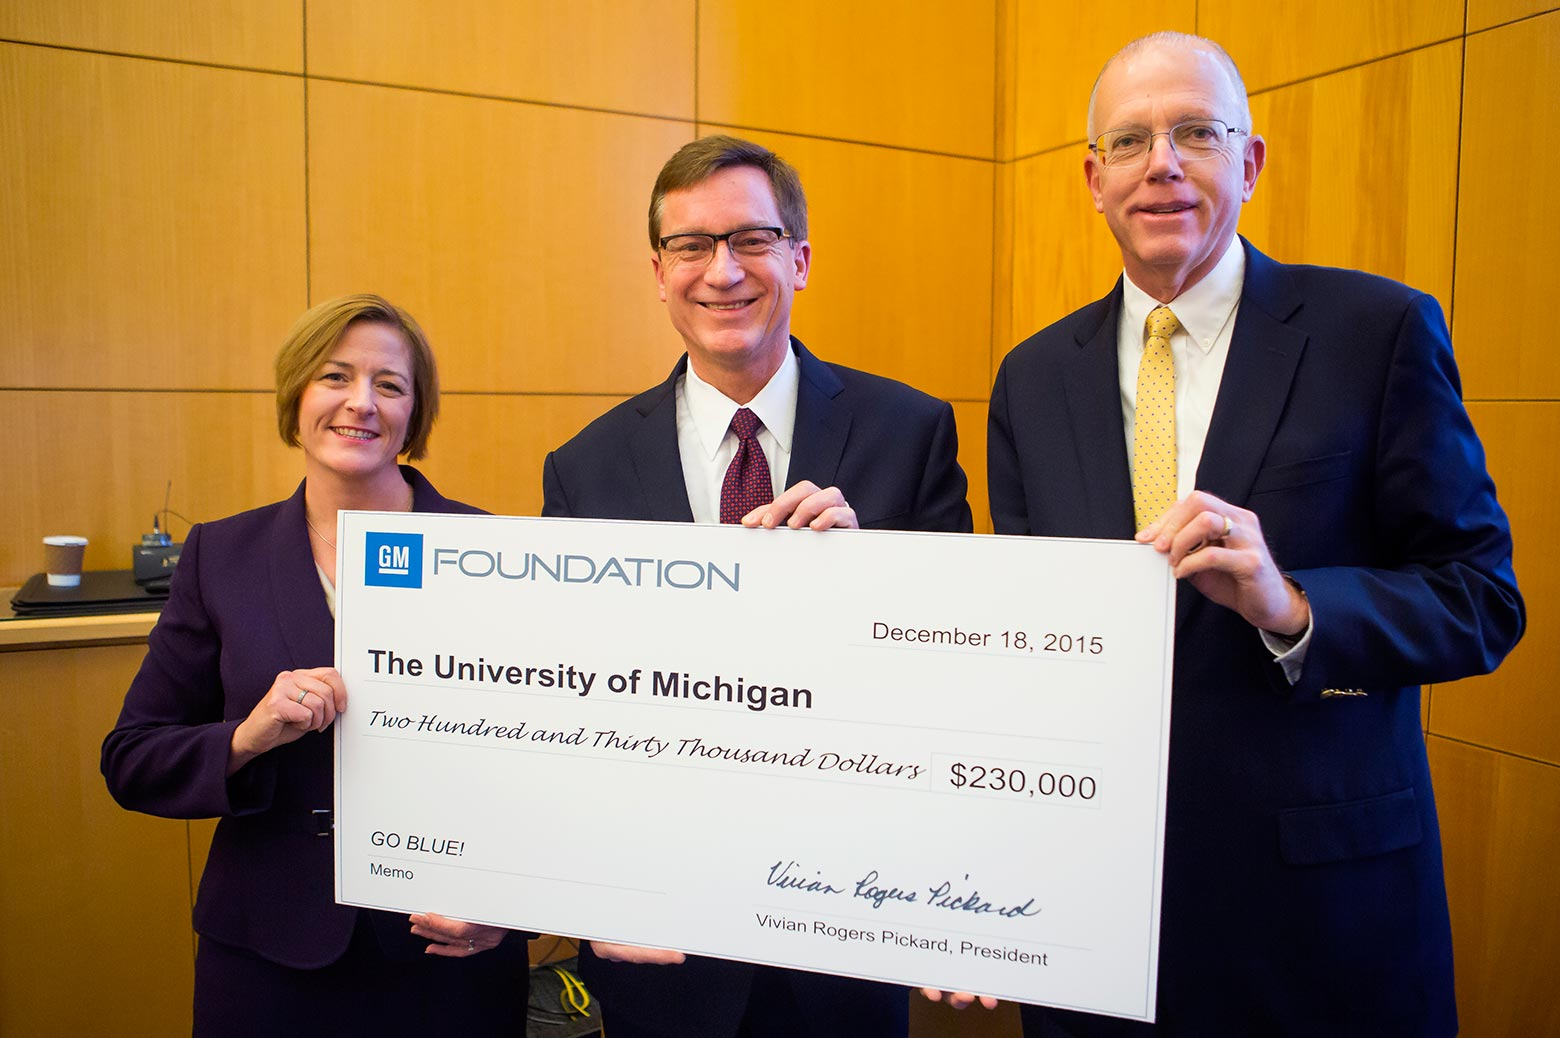 Large check is presented to representatives from U-M